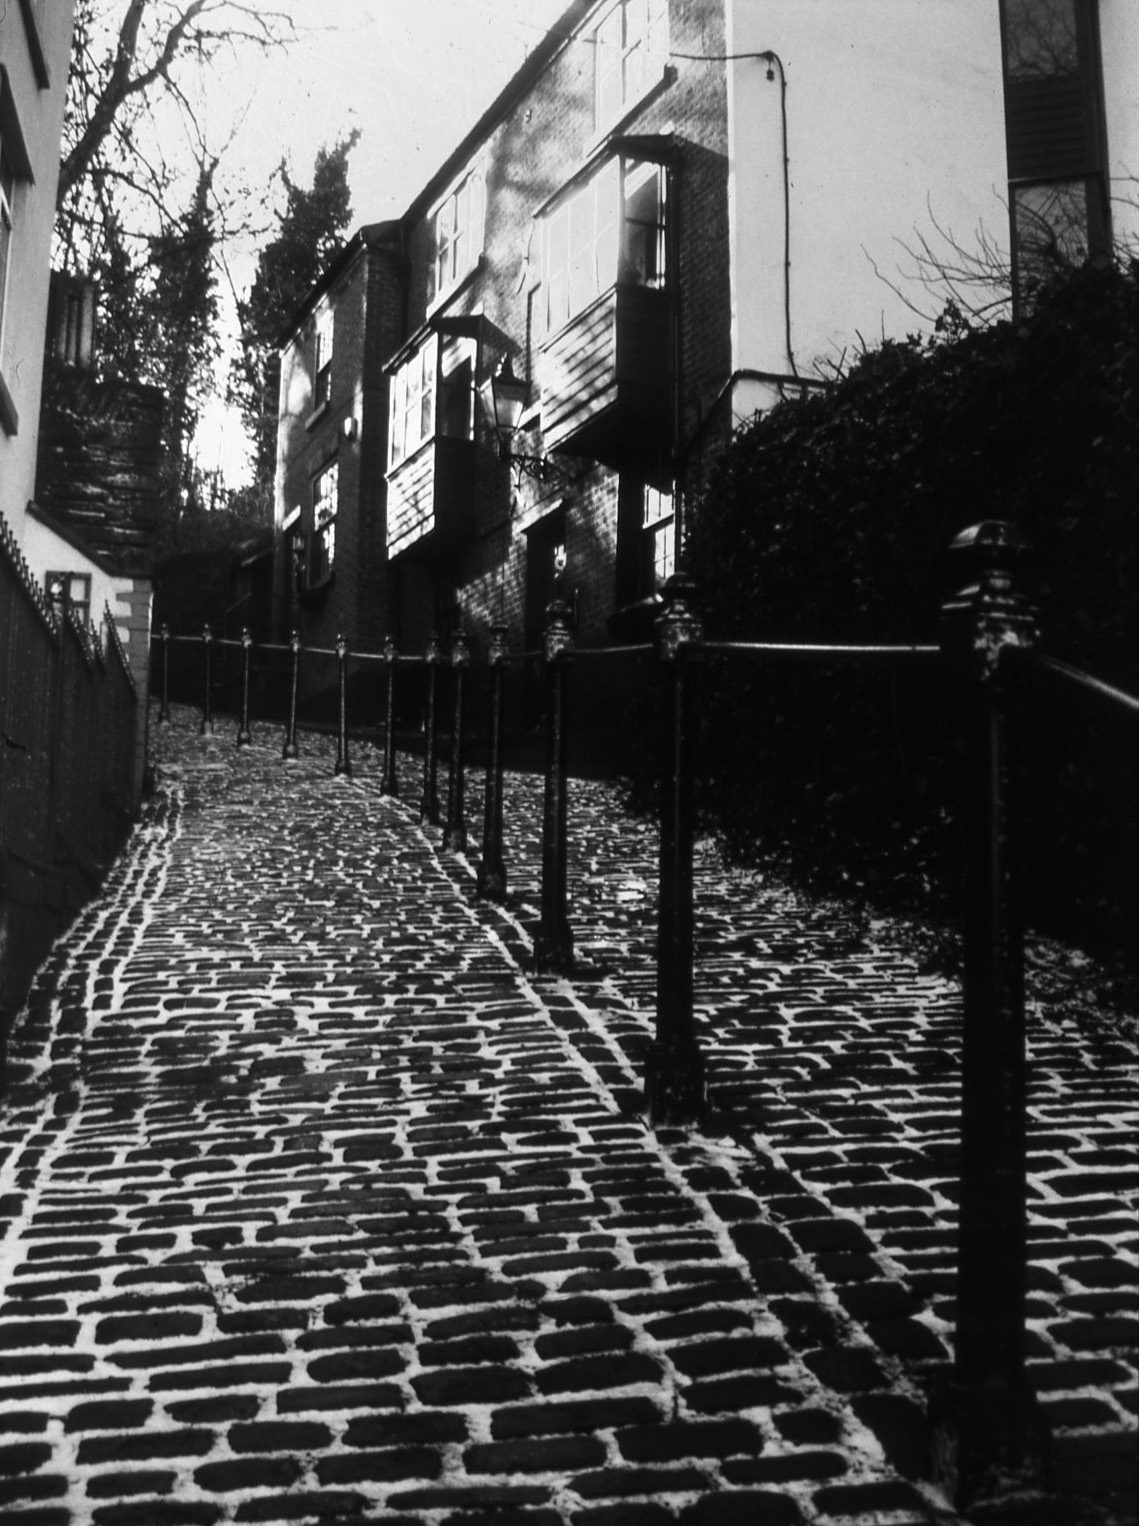 Image shot on ILFORD Photo PANF ISO 50 black and white film then reversal processed